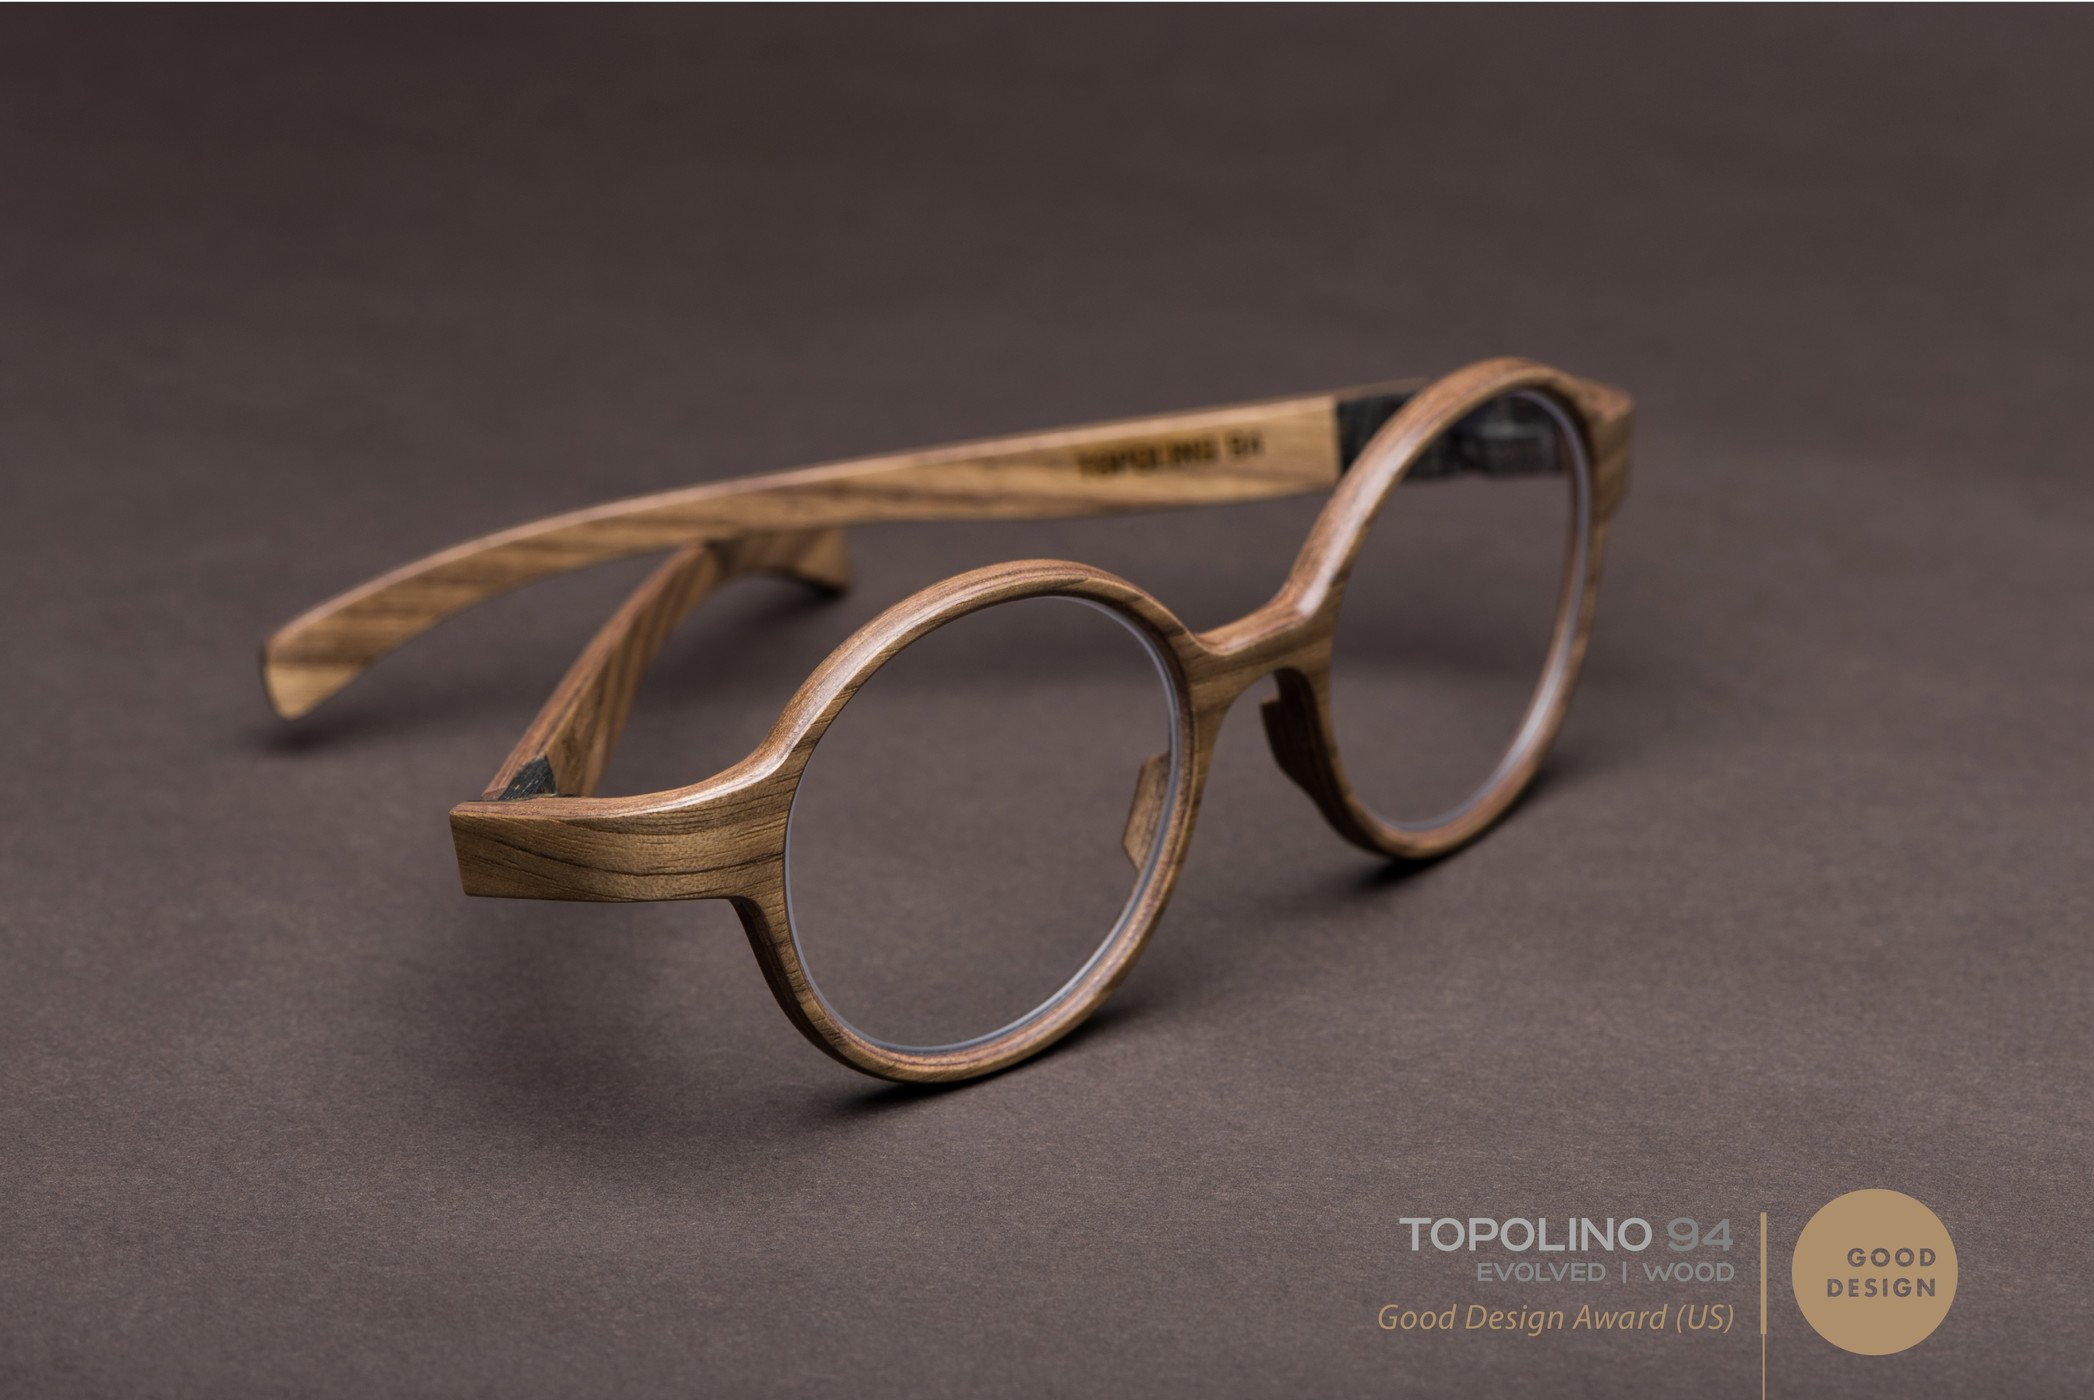 18fe3fc937 good design award. The Topolino from the ROLF ...